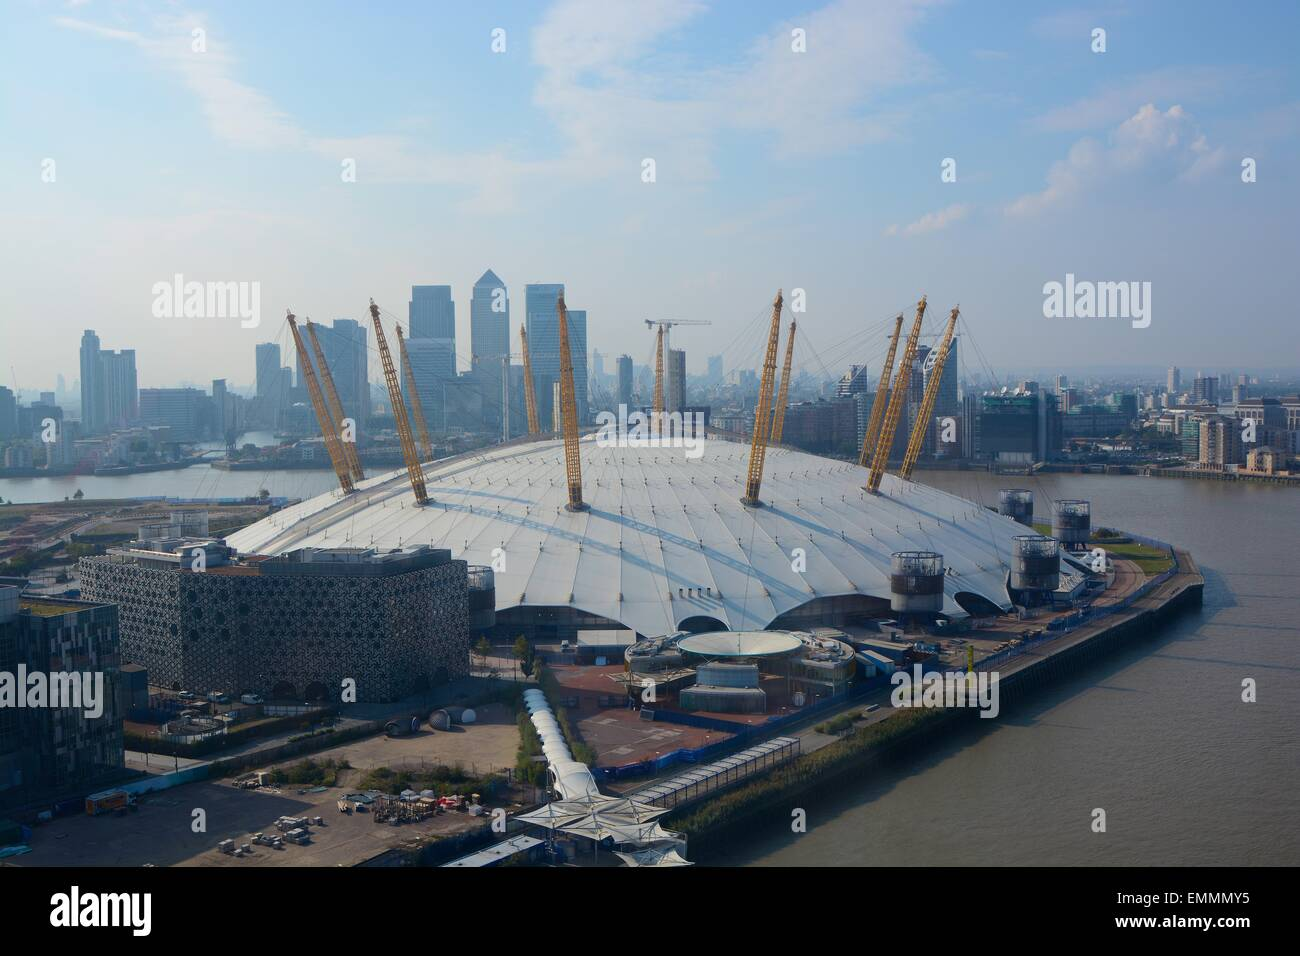 The O2 Arena on the Greenwich Peninsular, London, England. Aerial view with Docklands in background Stock Photo